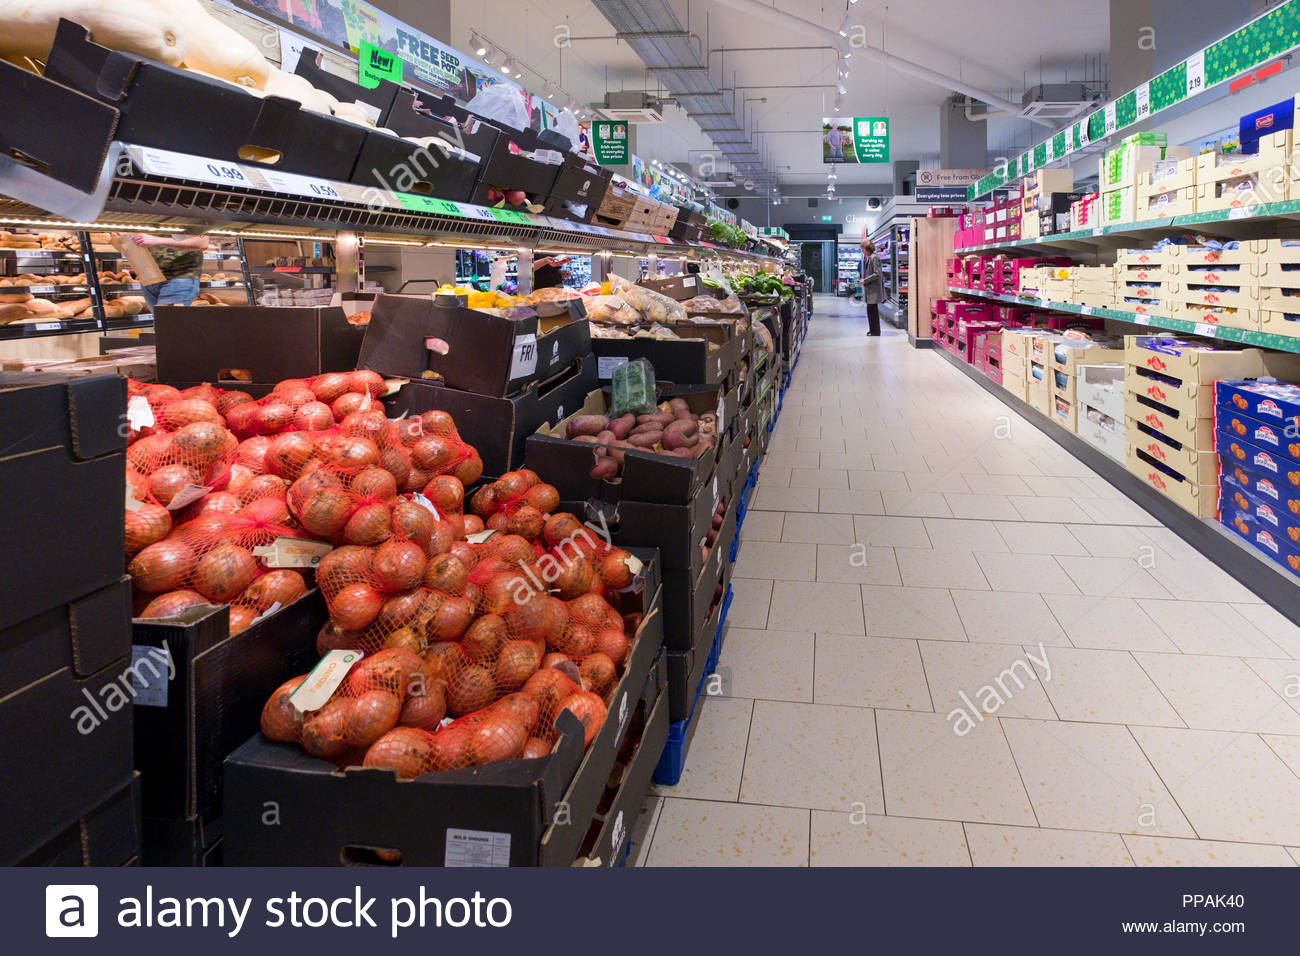 Fresh produce and baked goods inside Lidl discount